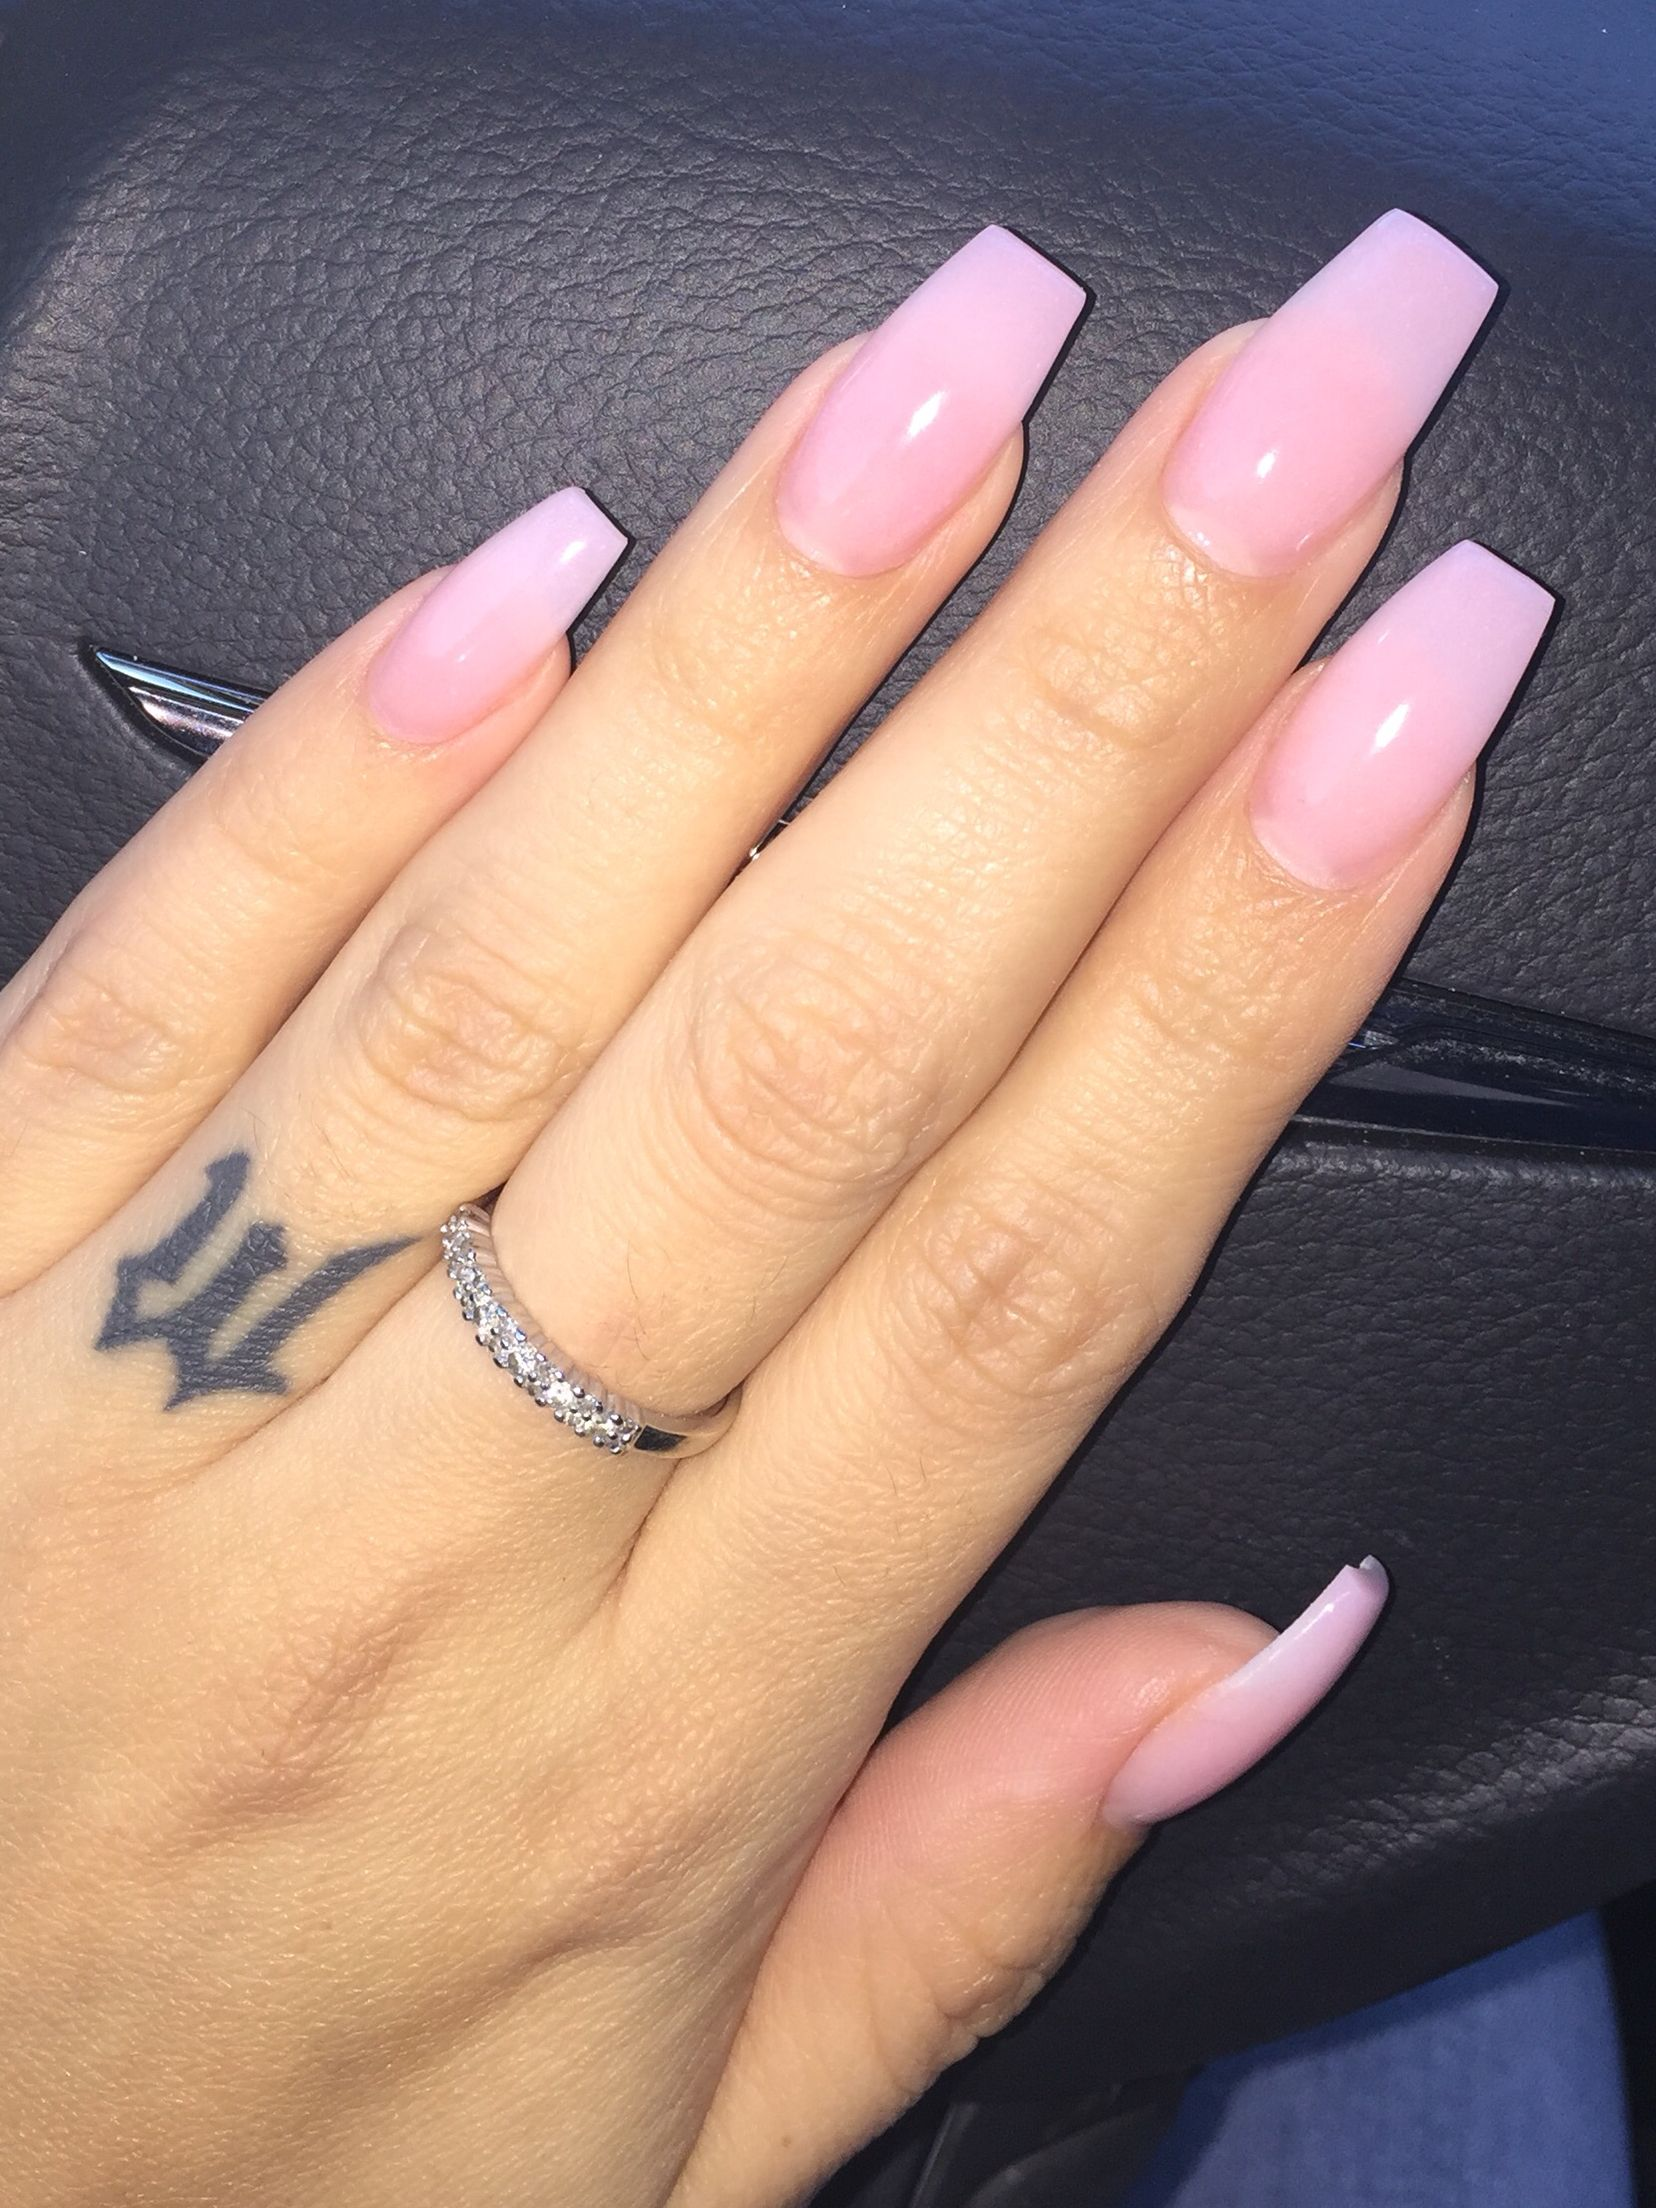 Aaasshh Pink Powder Acrylic With Clear Gelish Instagra AshleyVictoriaxo